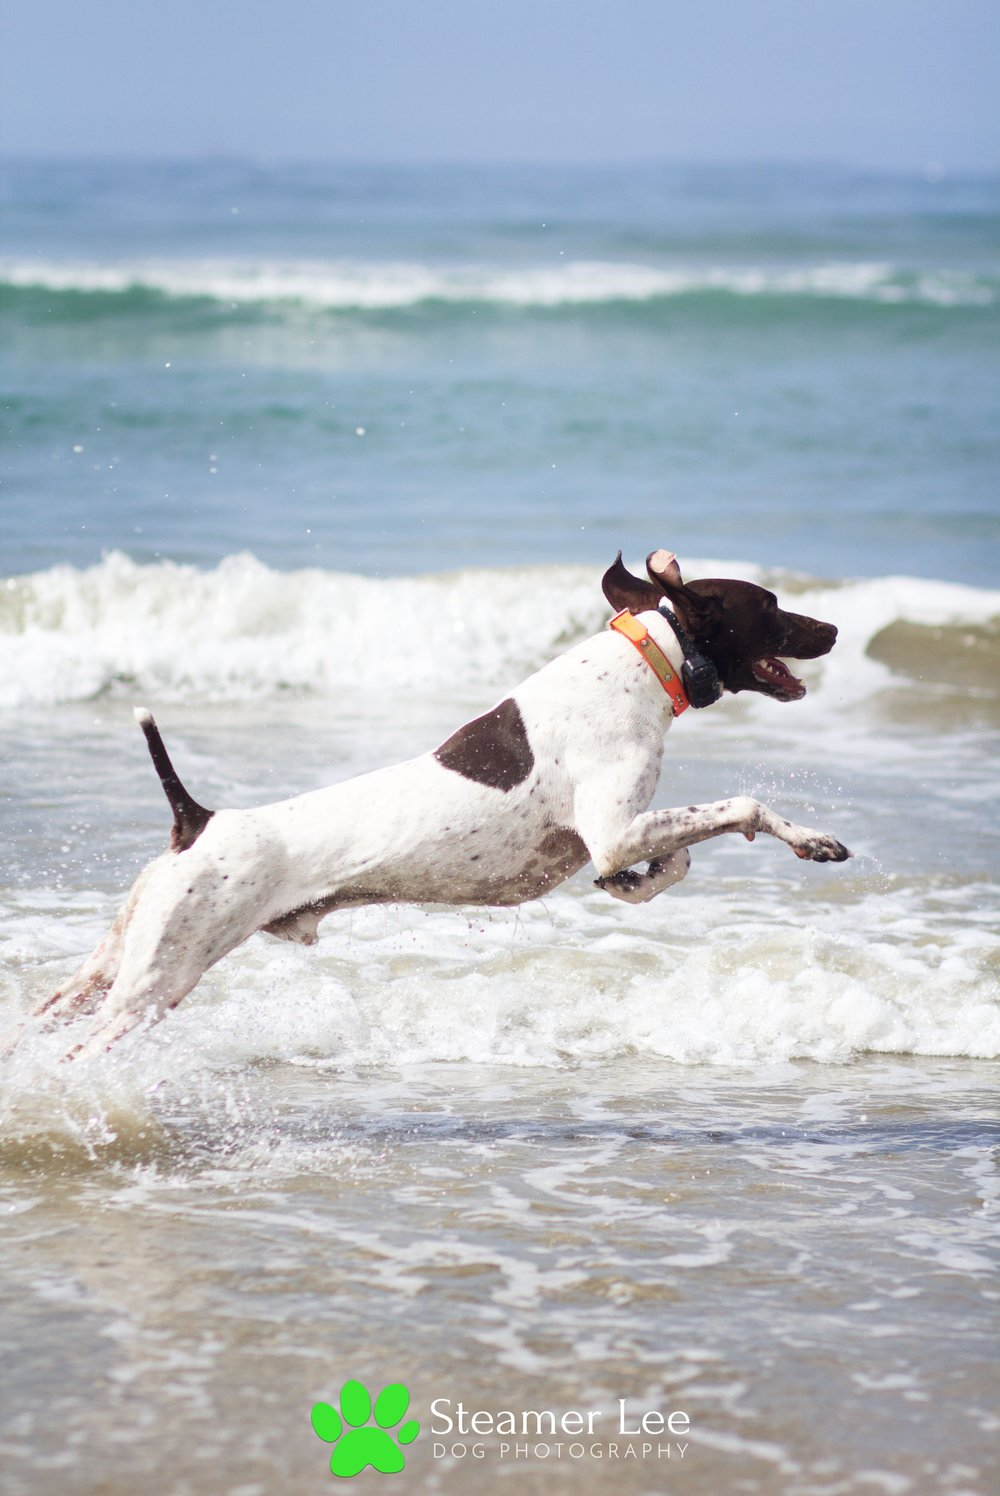 Steamer Lee Dog Photography - German Shorthaired Pointer Meetup - Huntington Beach Dog Beach - 00039.jpg